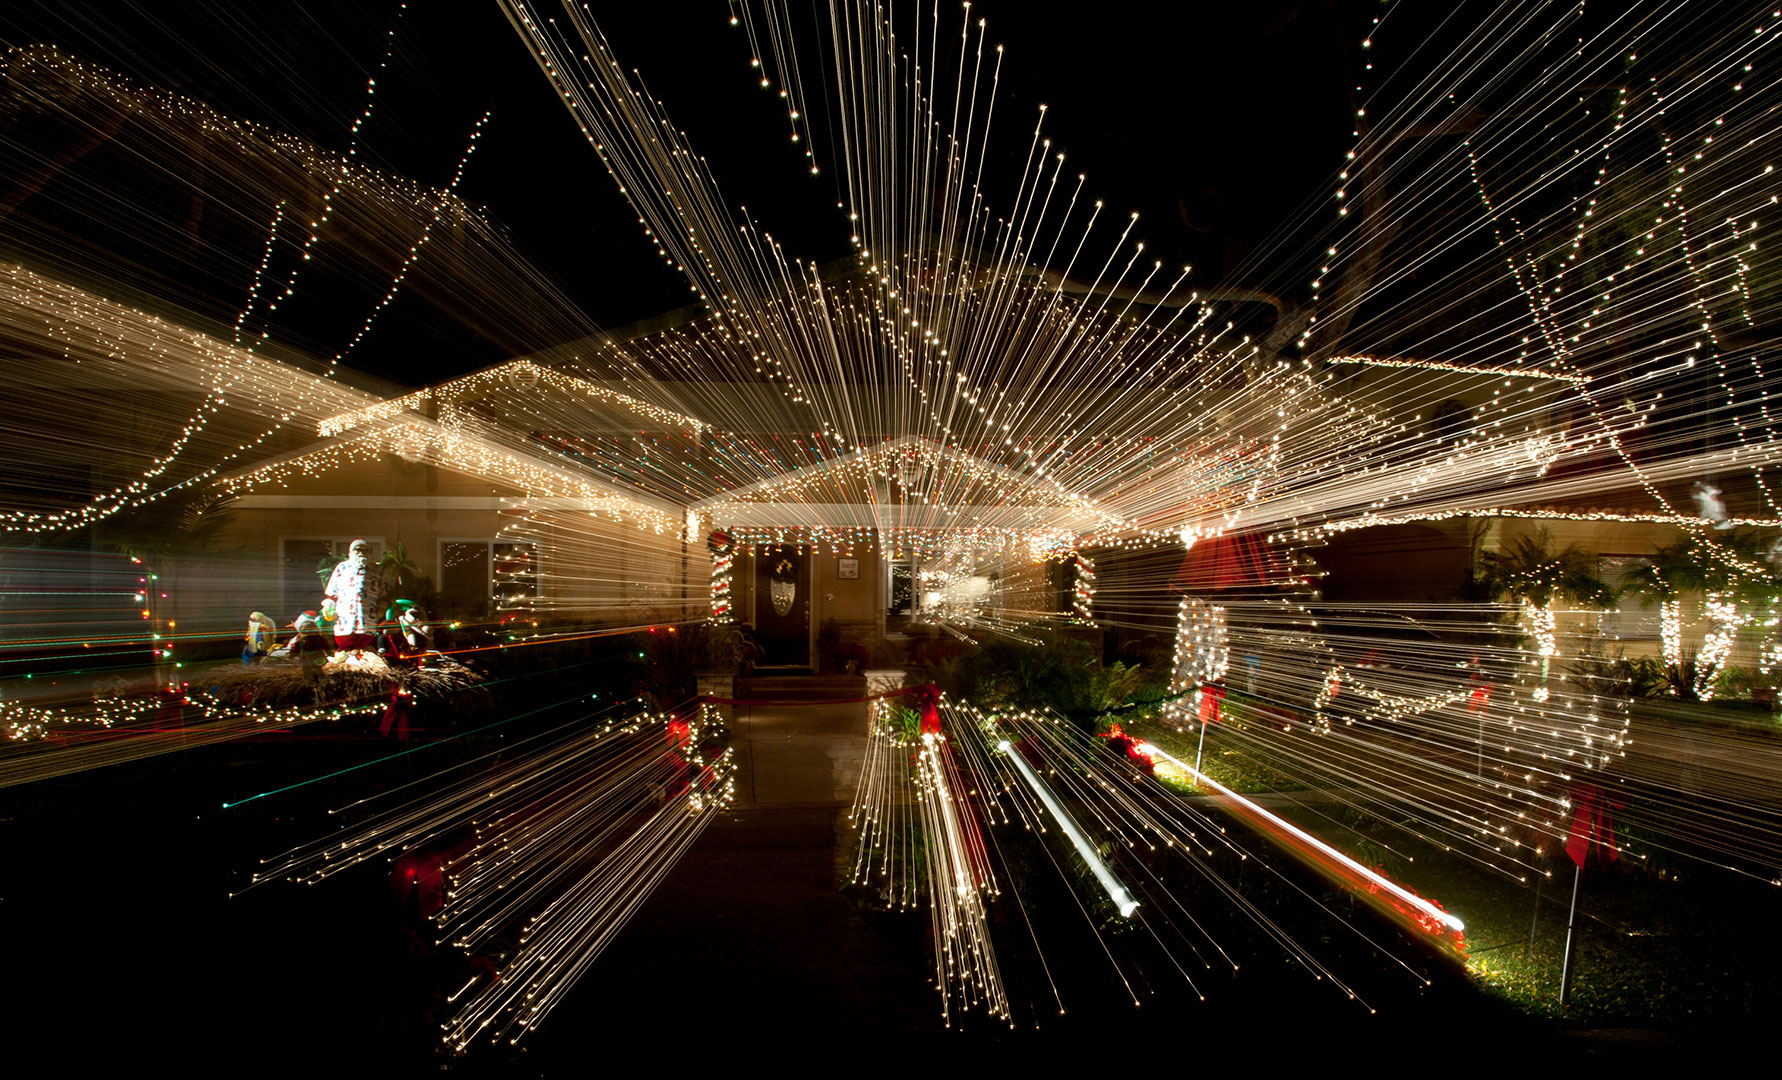 Christmas Lights Example #5